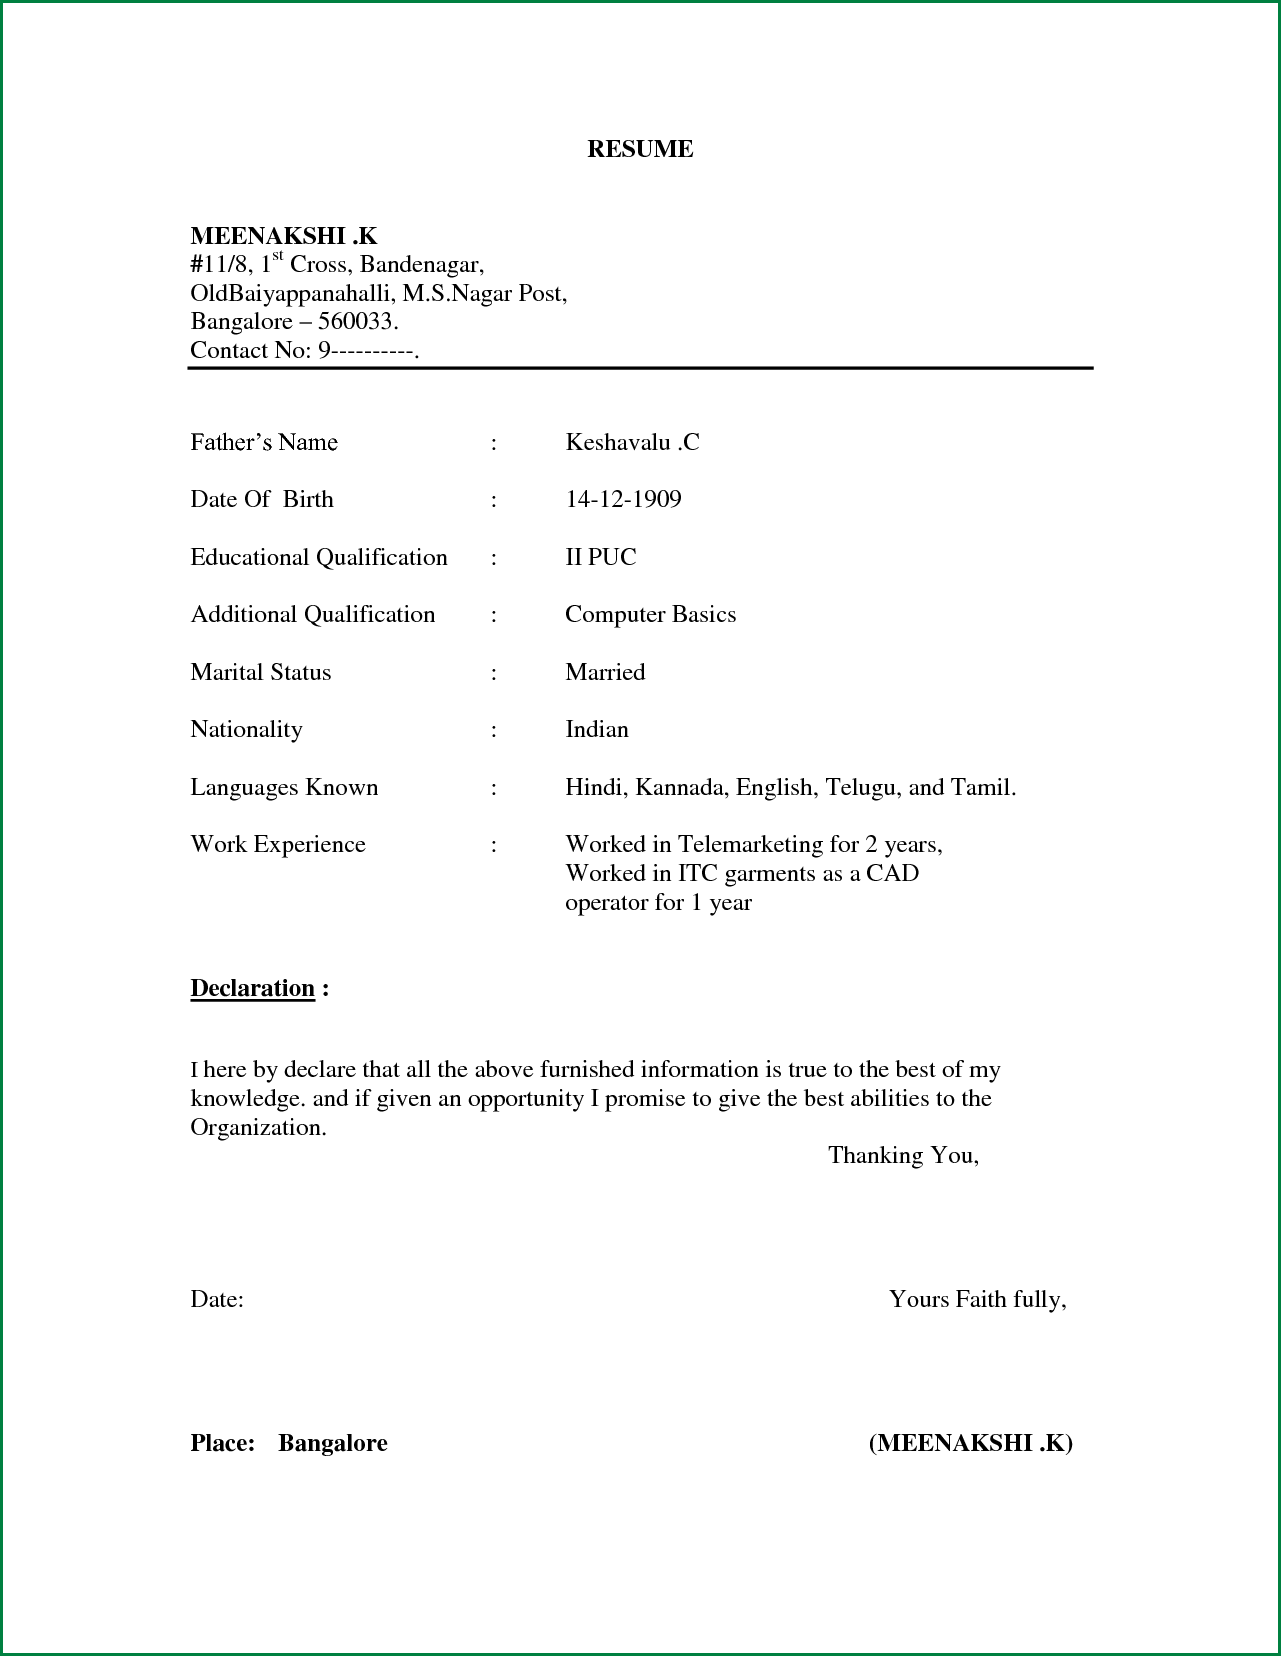 my resume 2015 military date format - What Is The Best Resume Format